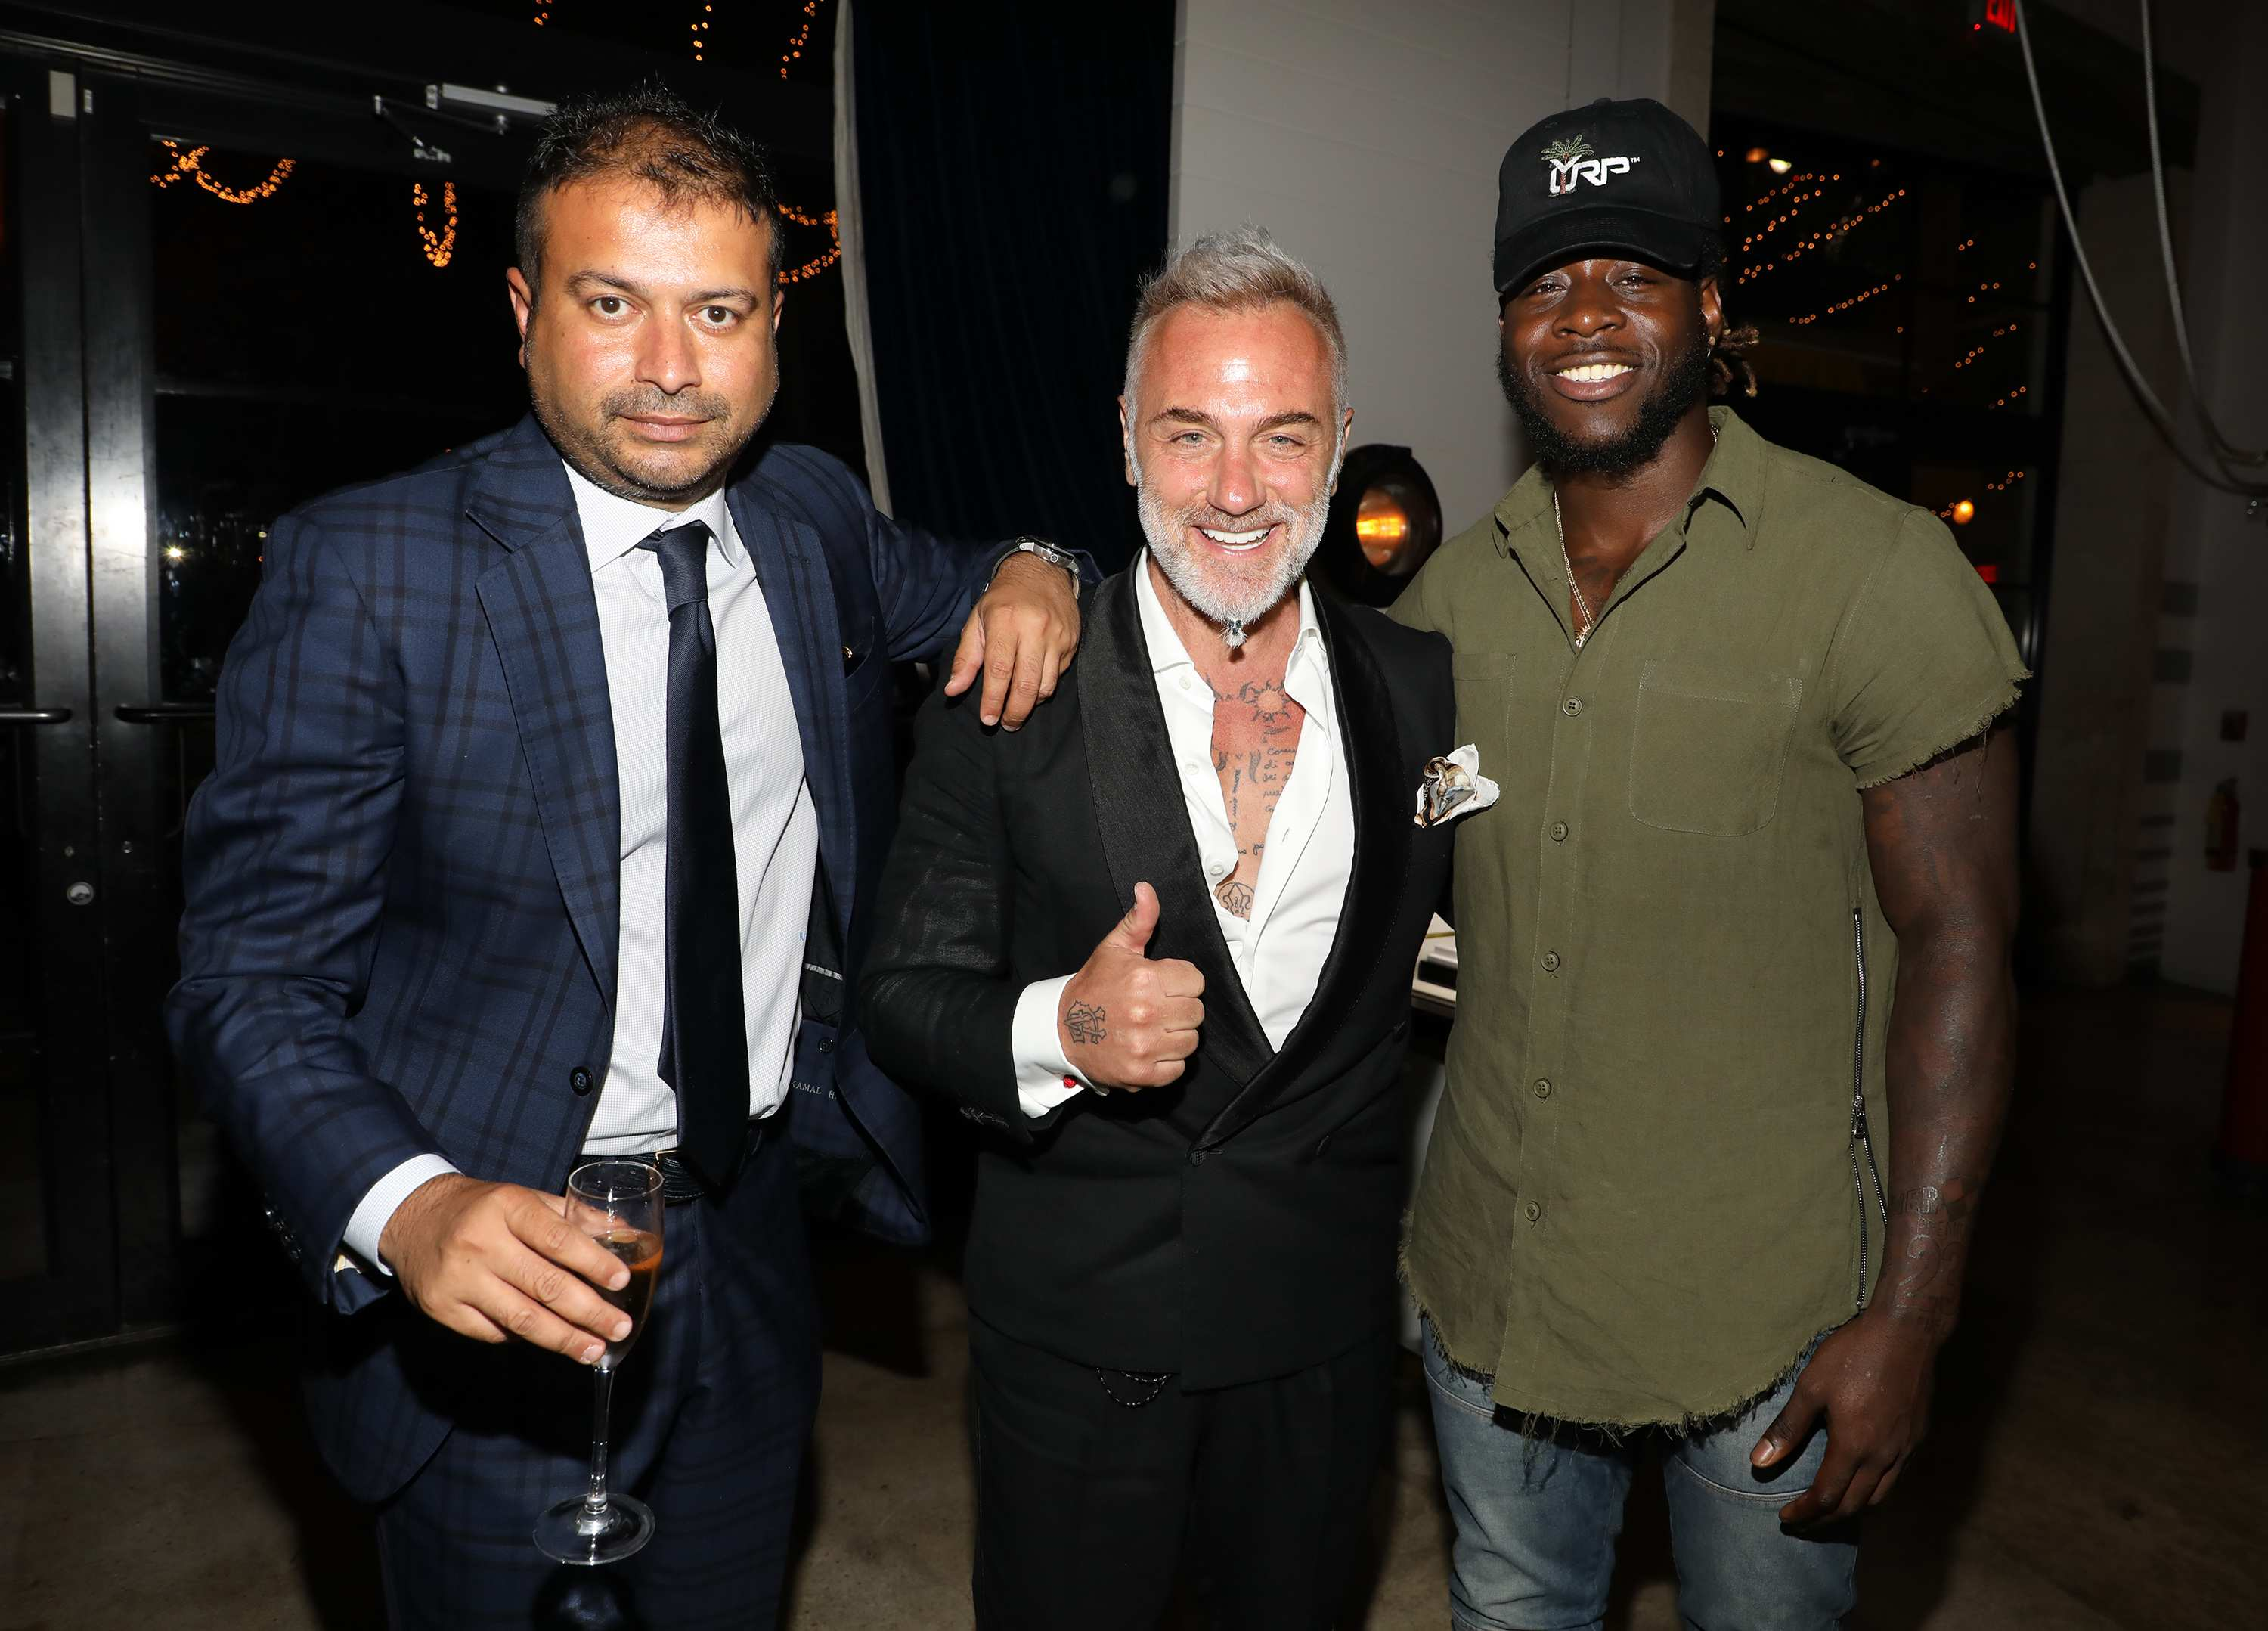 MIAMI, FL - APRIL 6: Kamal Hotchandani, Gianluca Vacchi and Jay Ajayi are seen at the Haute Living and Ulysse Nardin Collectors Dinner at Seaspice on April 6, 2017 in Miami, Florida. (Photo by Alexander Tamargo/Getty Images for Haute Living)